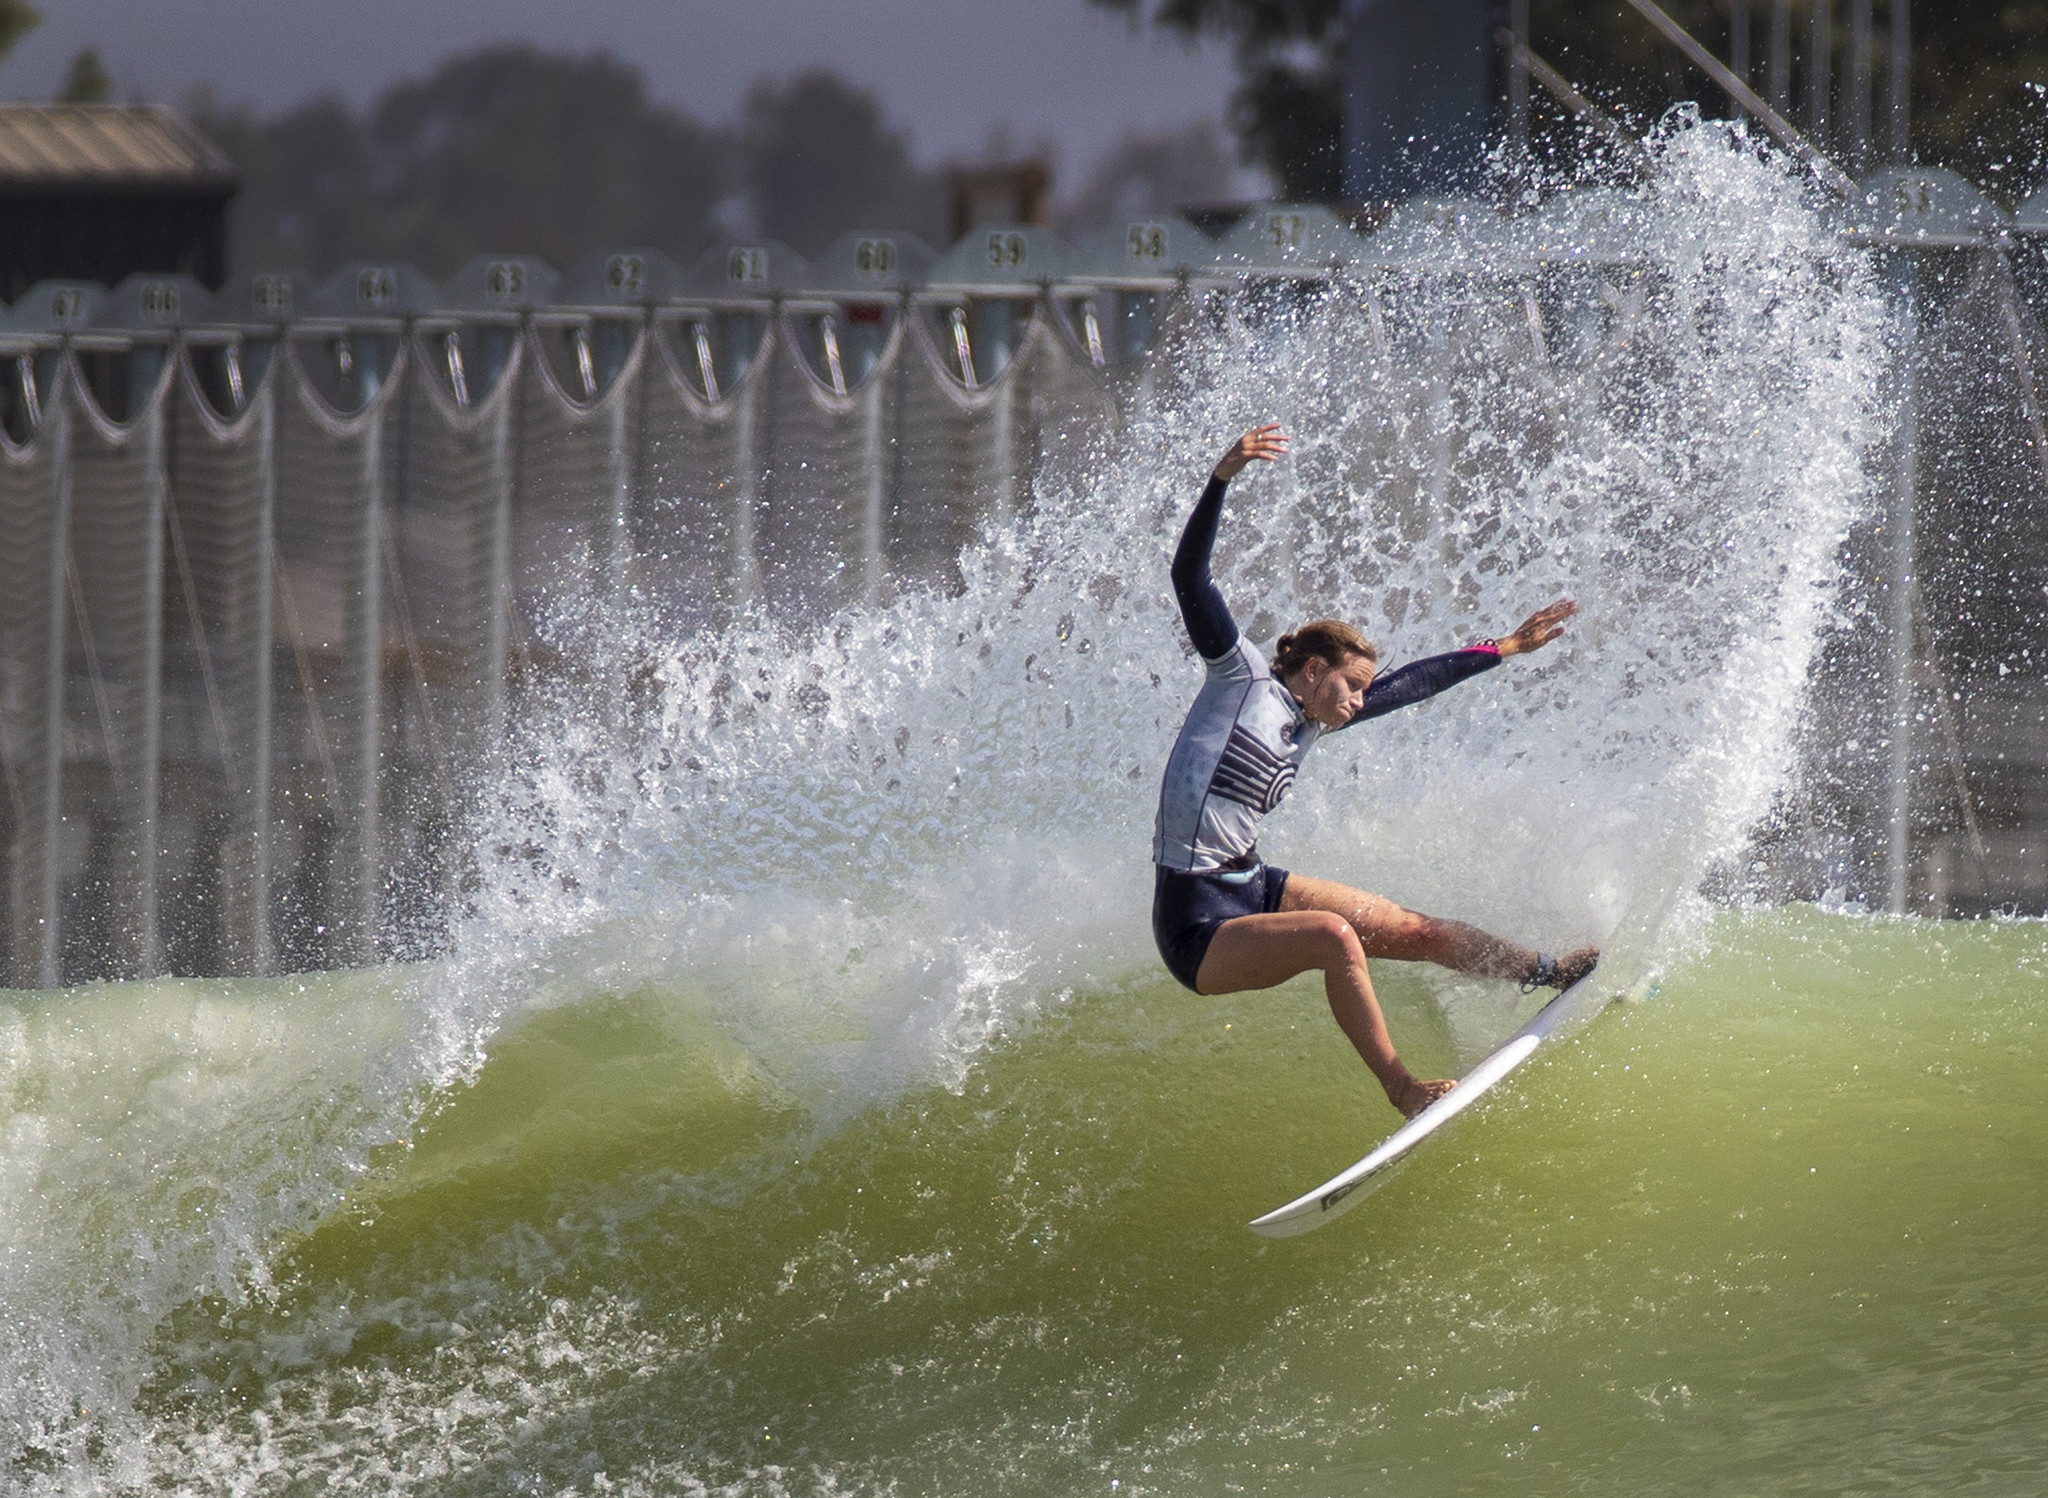 LEMOORE, CALIF. — FRIDAY, MAY 4, 2018: Pro surfer Bianca Buitendag, of South Africa, who is compet